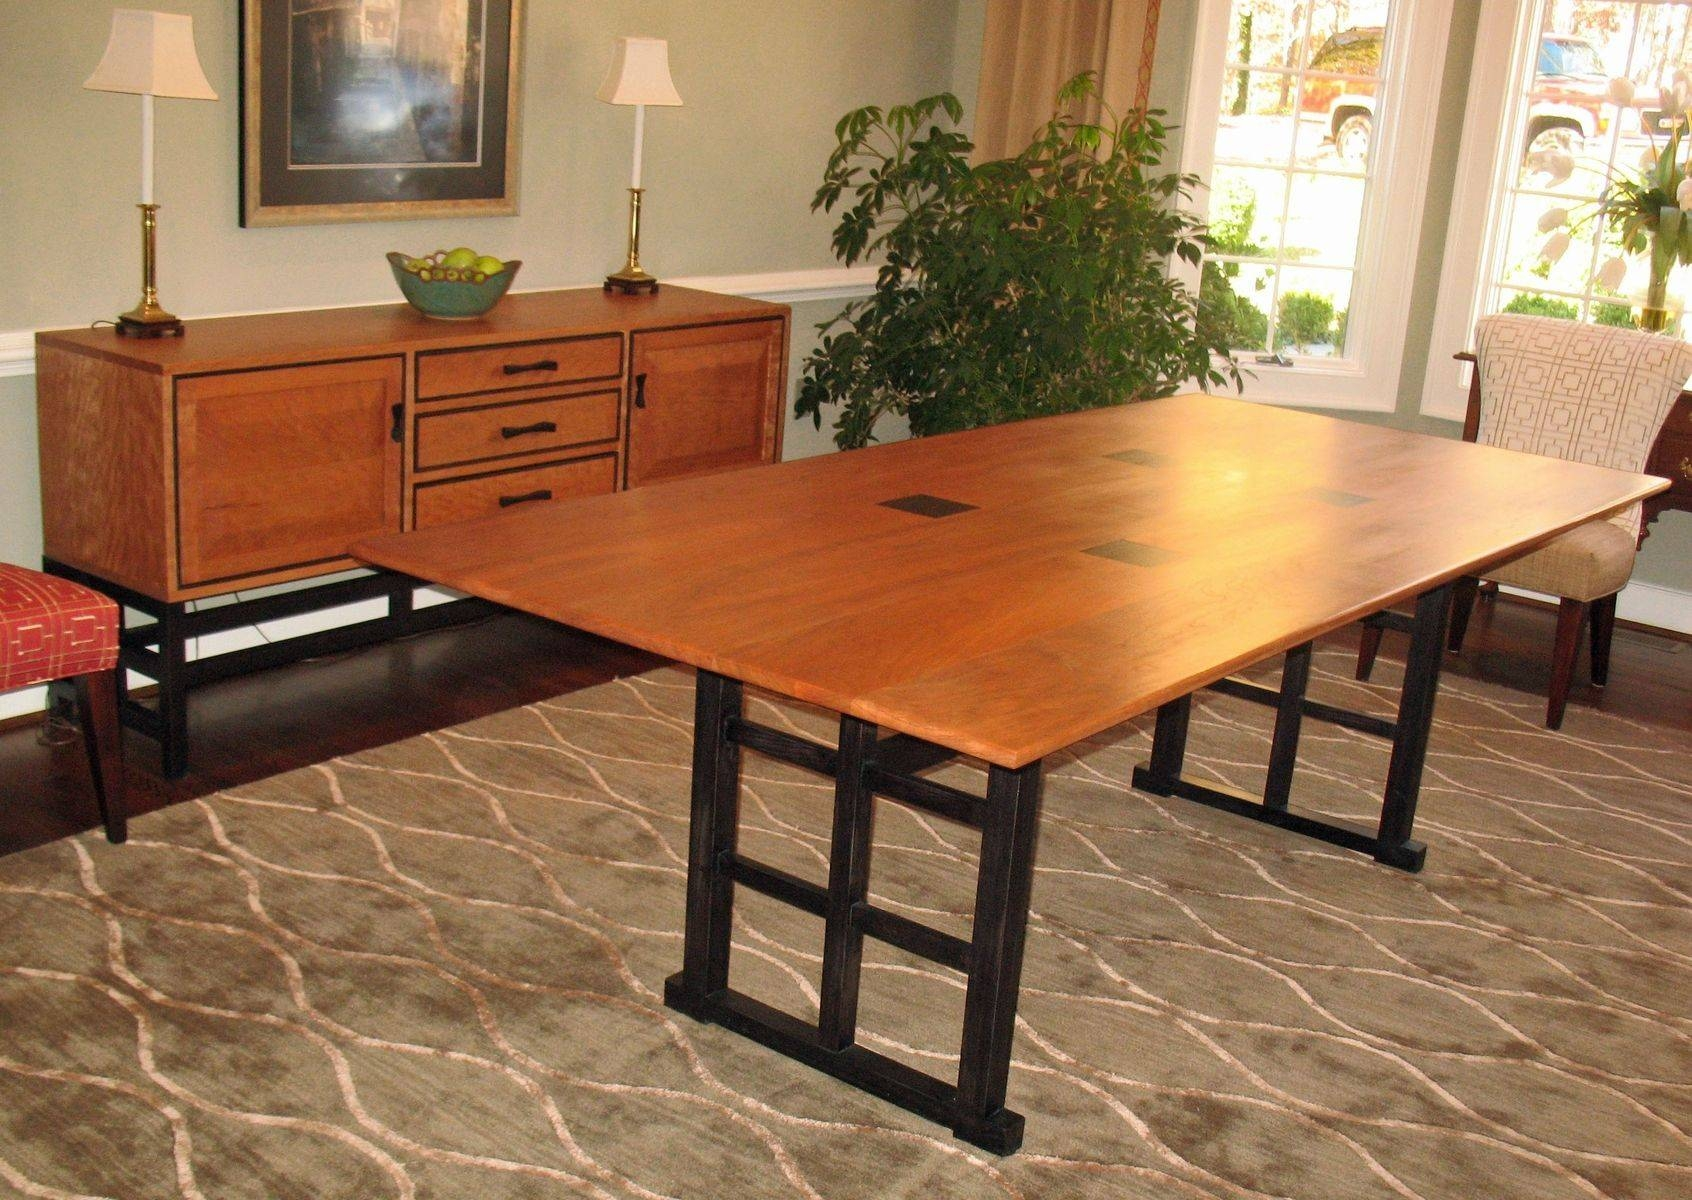 Hand Crafted Curly Cherry Dining Table And Sideboardgo Figured Intended For Best And Newest Dining Room Sets With Sideboards (#8 of 15)